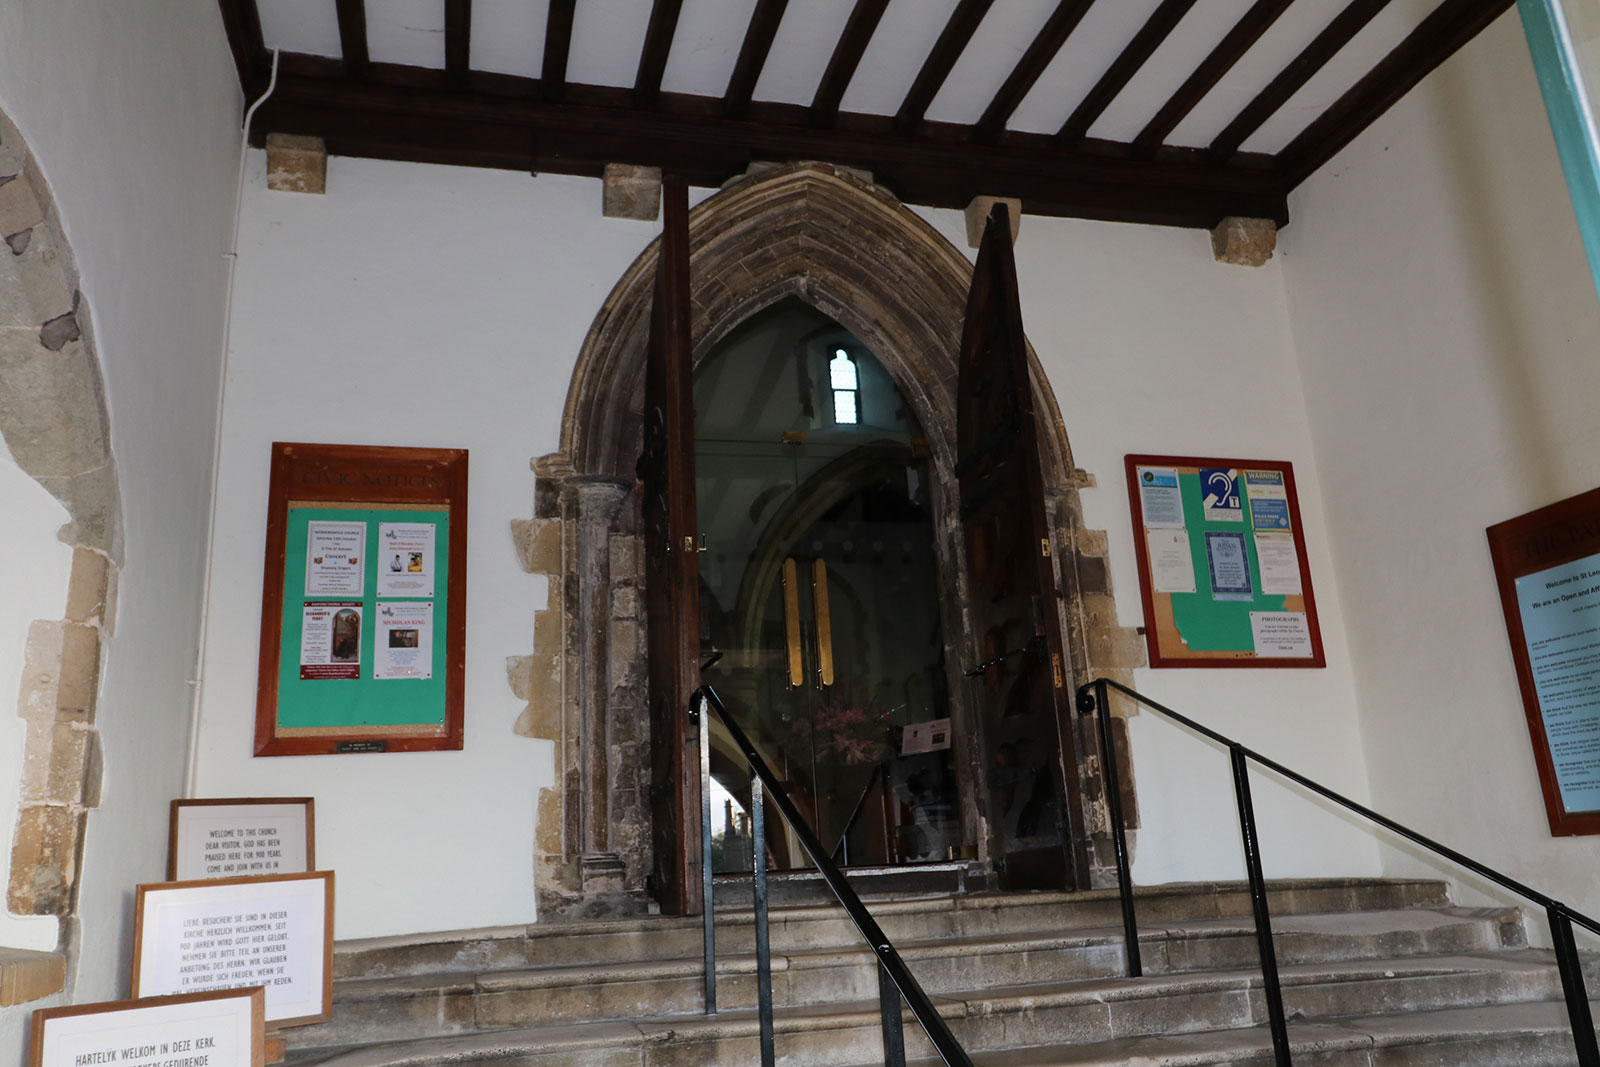 Bespoke Glass Doors made to fit Archway Stonework, St. Leonard's Church